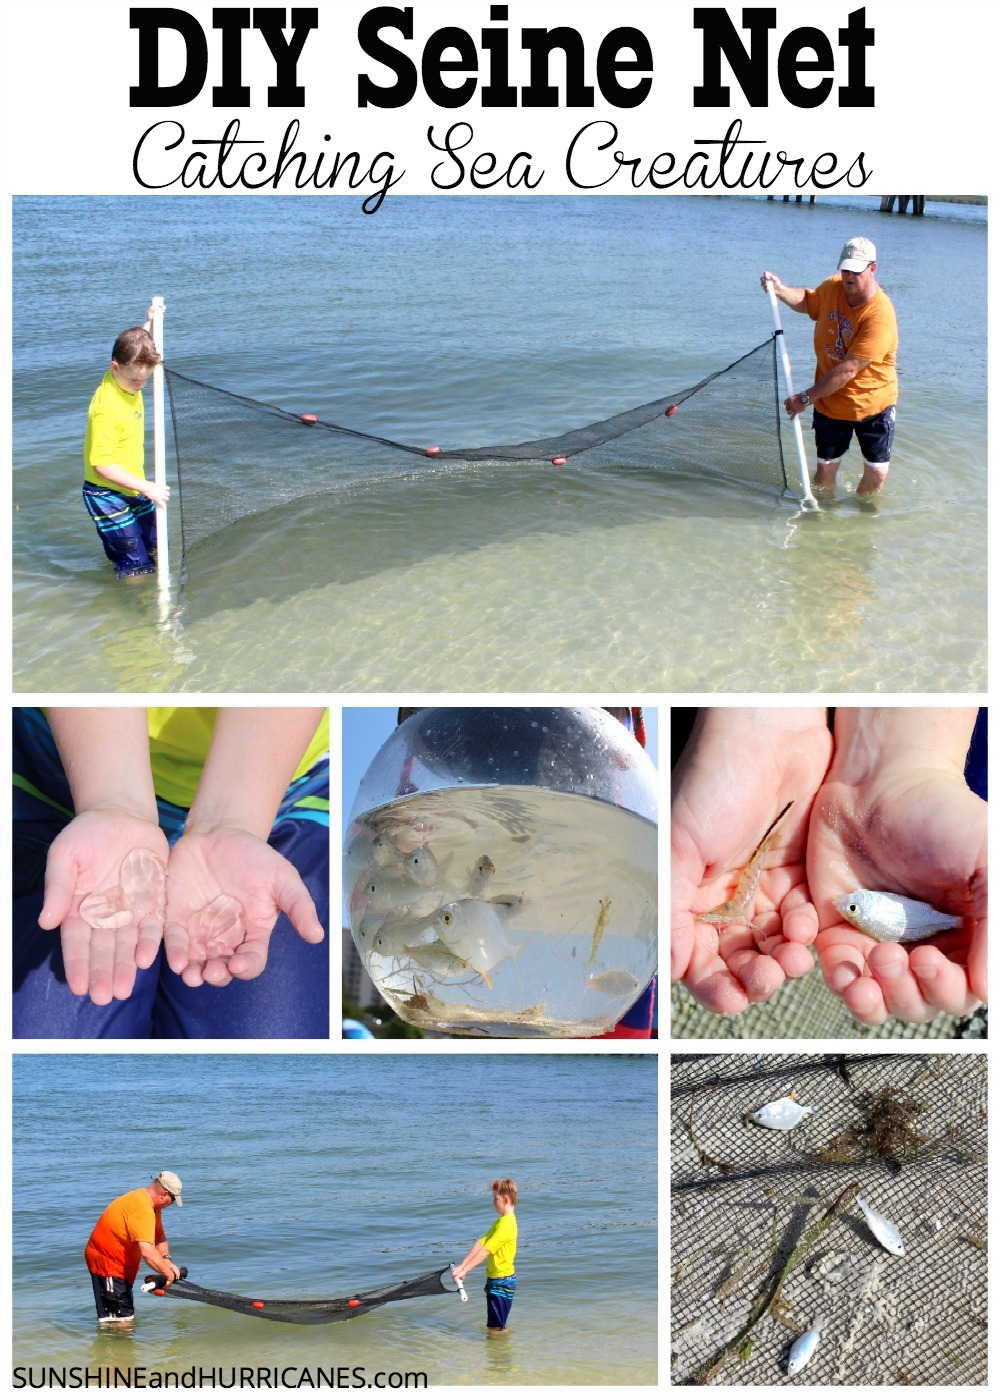 Looking for a fun and affordable way to fill a trip to the beach with a little more adventure, exploration and even education? You can pull together this quick and easy DIY Seine Net with little effort and then head out and see what sea creatures you can find at your favorite beach. SIY Seine Net, Catching Sea Creatures. SunshineandHurricanes.com